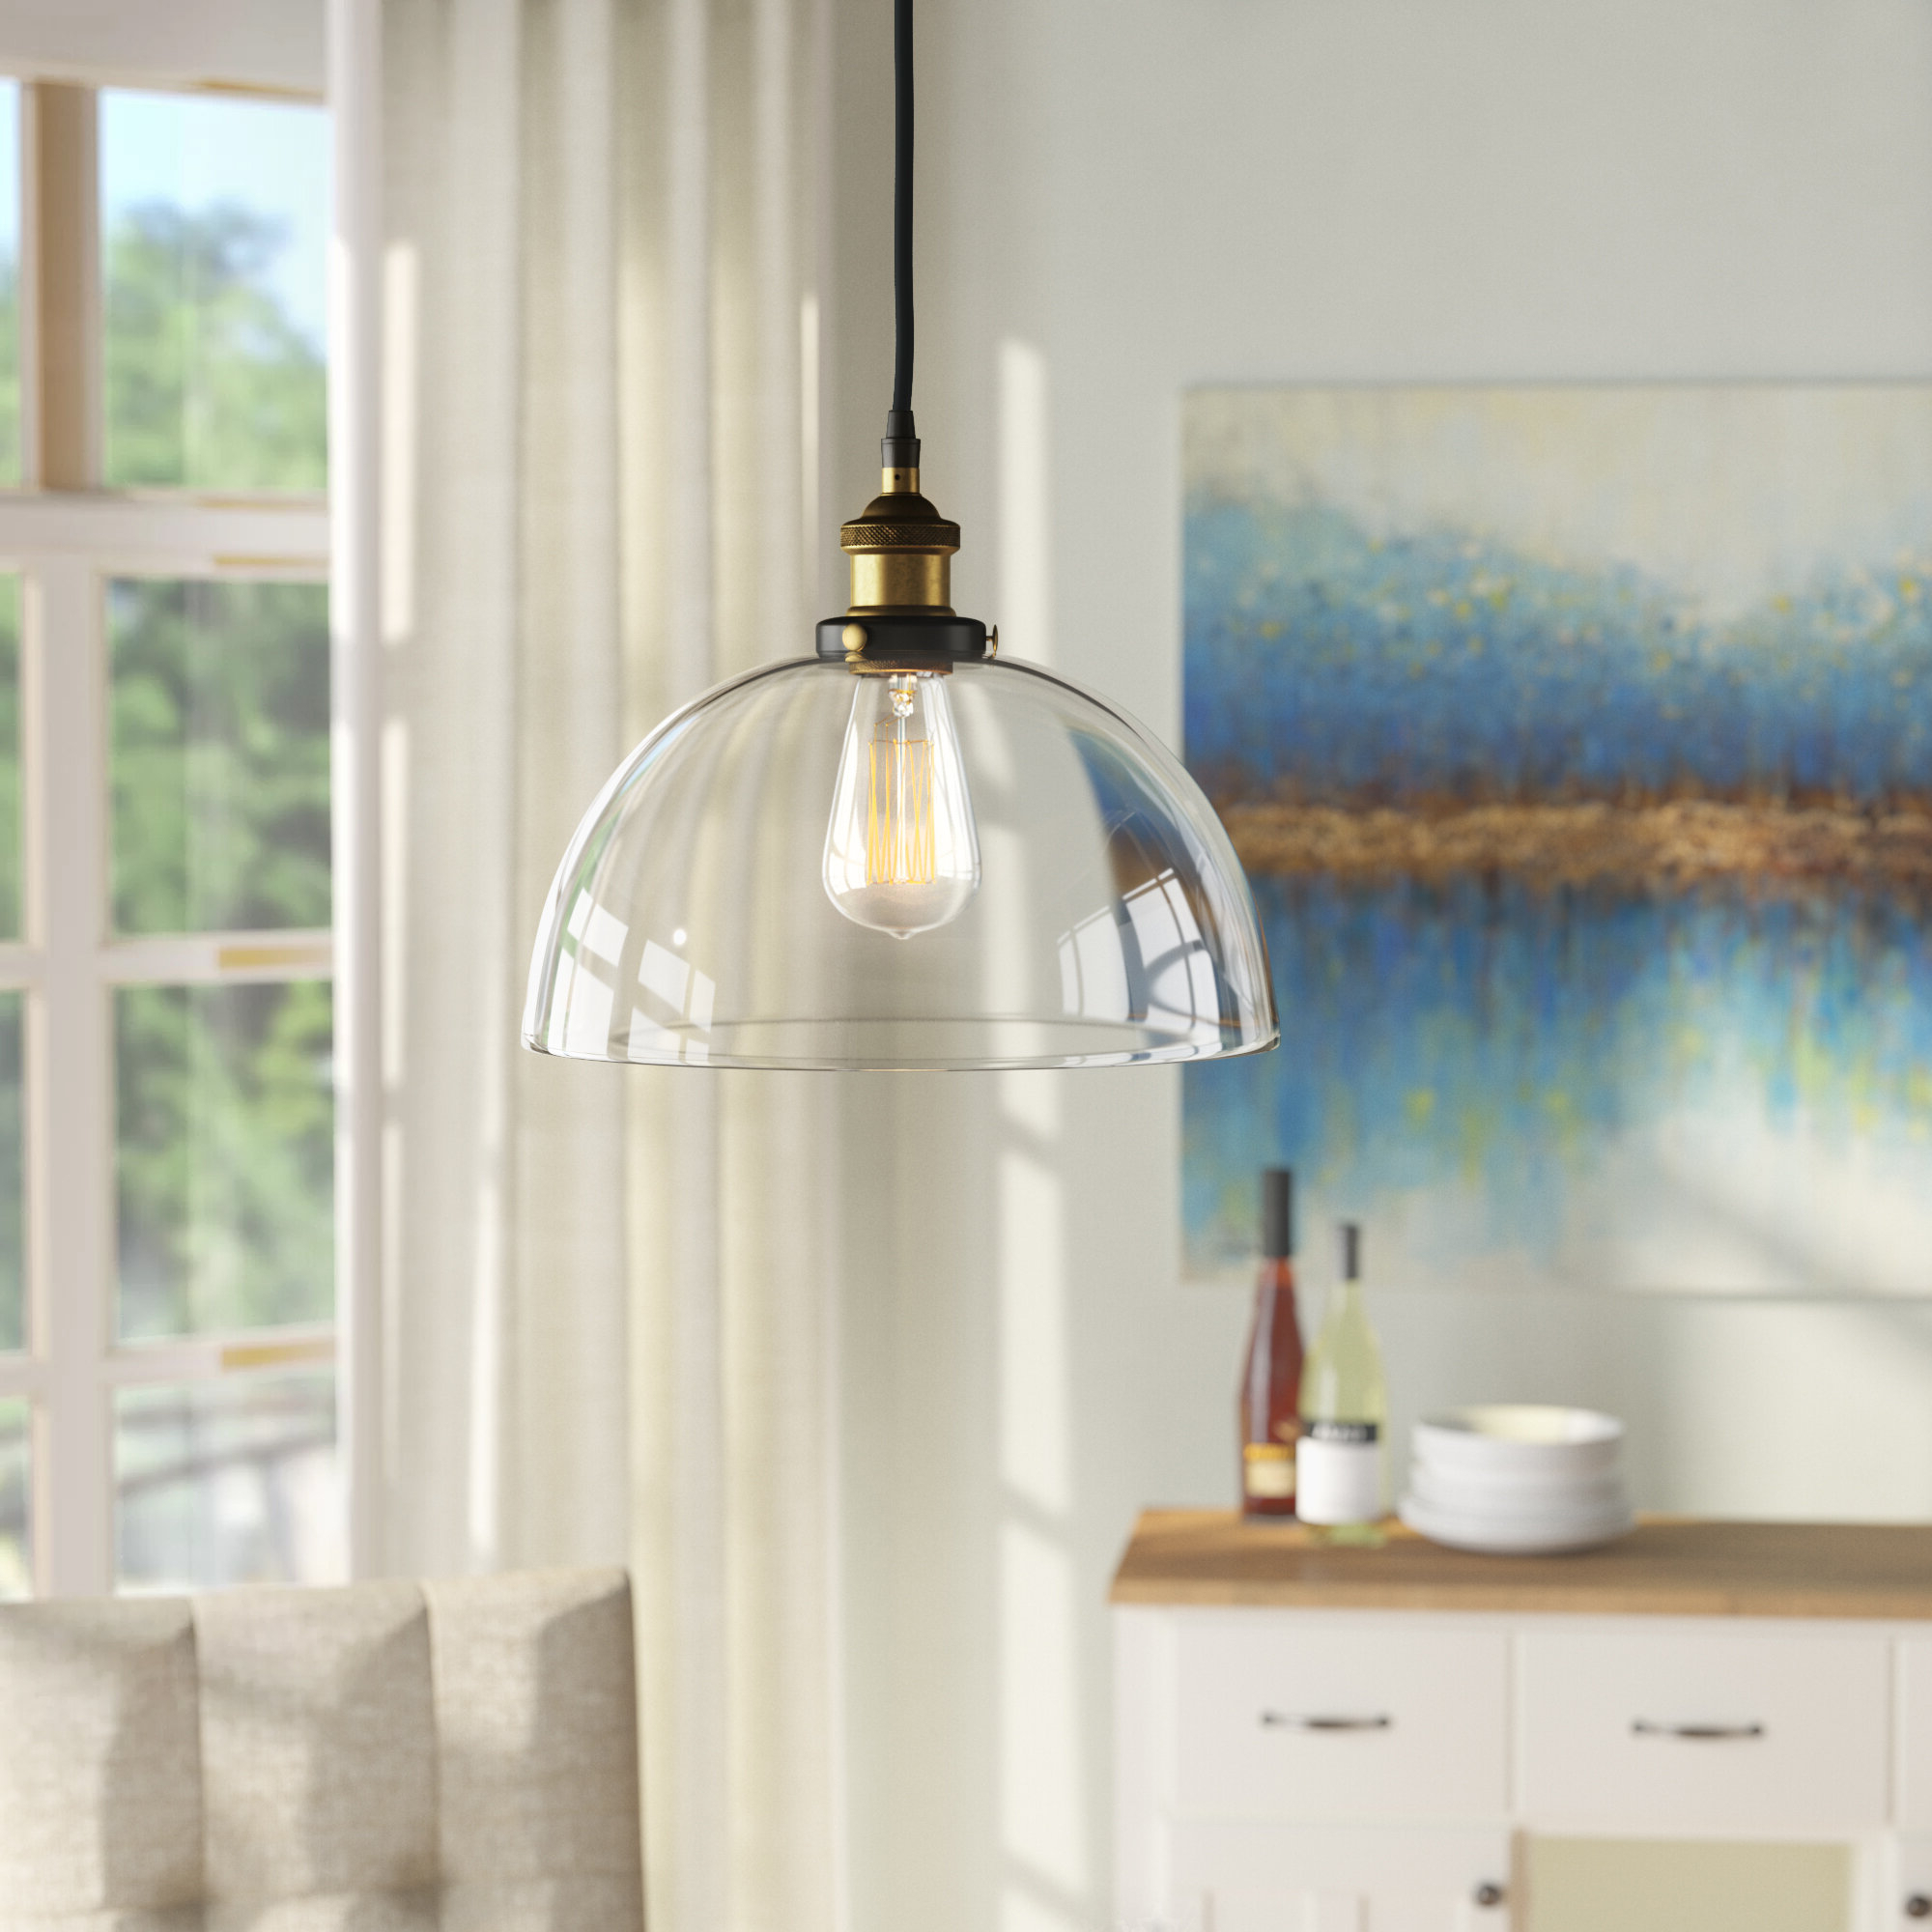 Amador 1 Light Dome Pendant With Regard To Widely Used Ninette 1 Light Dome Pendants (Gallery 13 of 20)